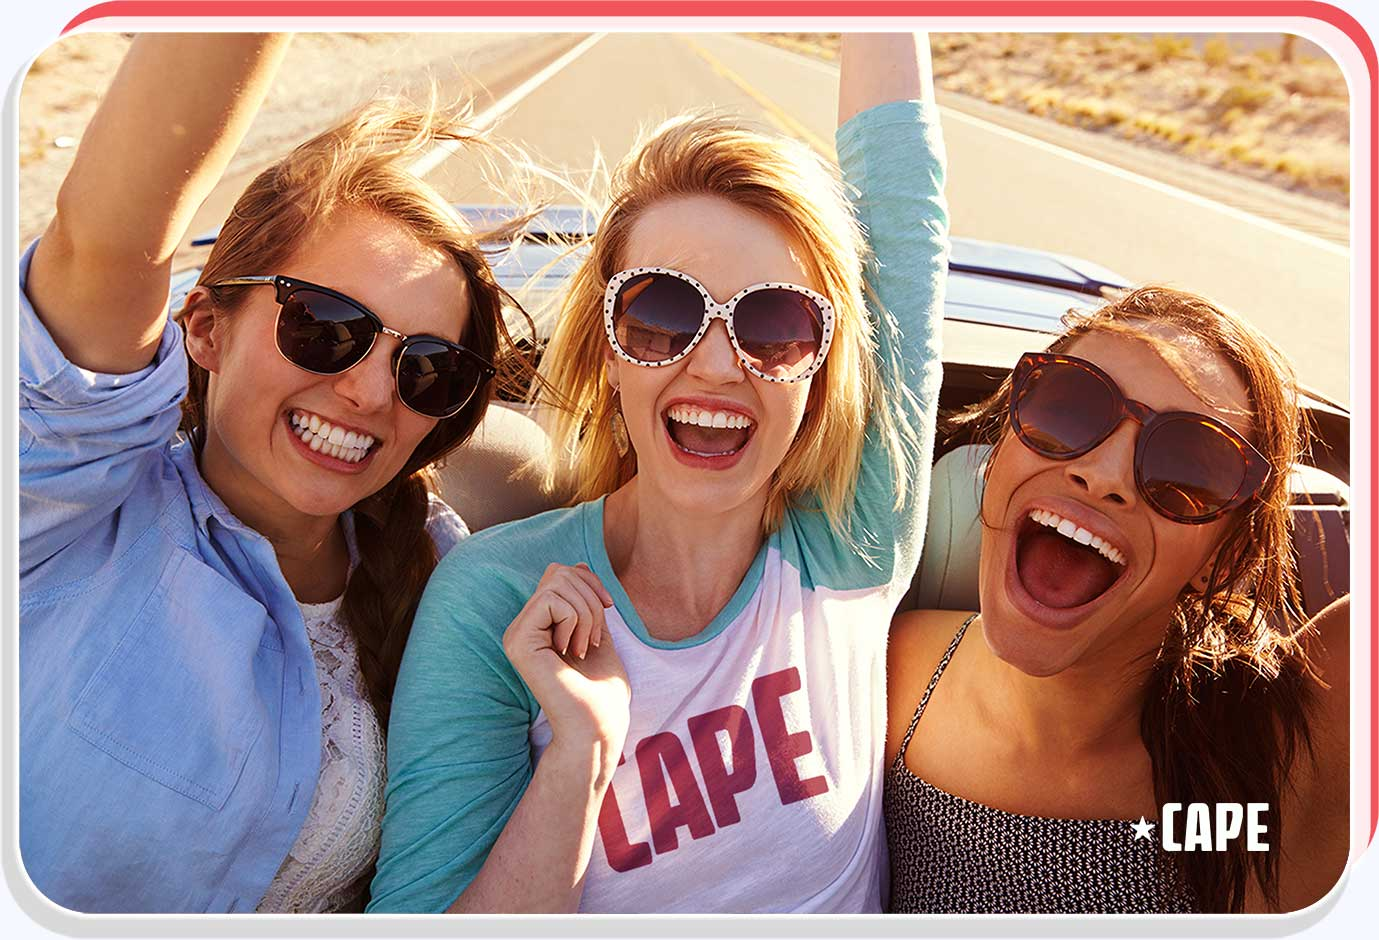 Cape Influencers riding in a car